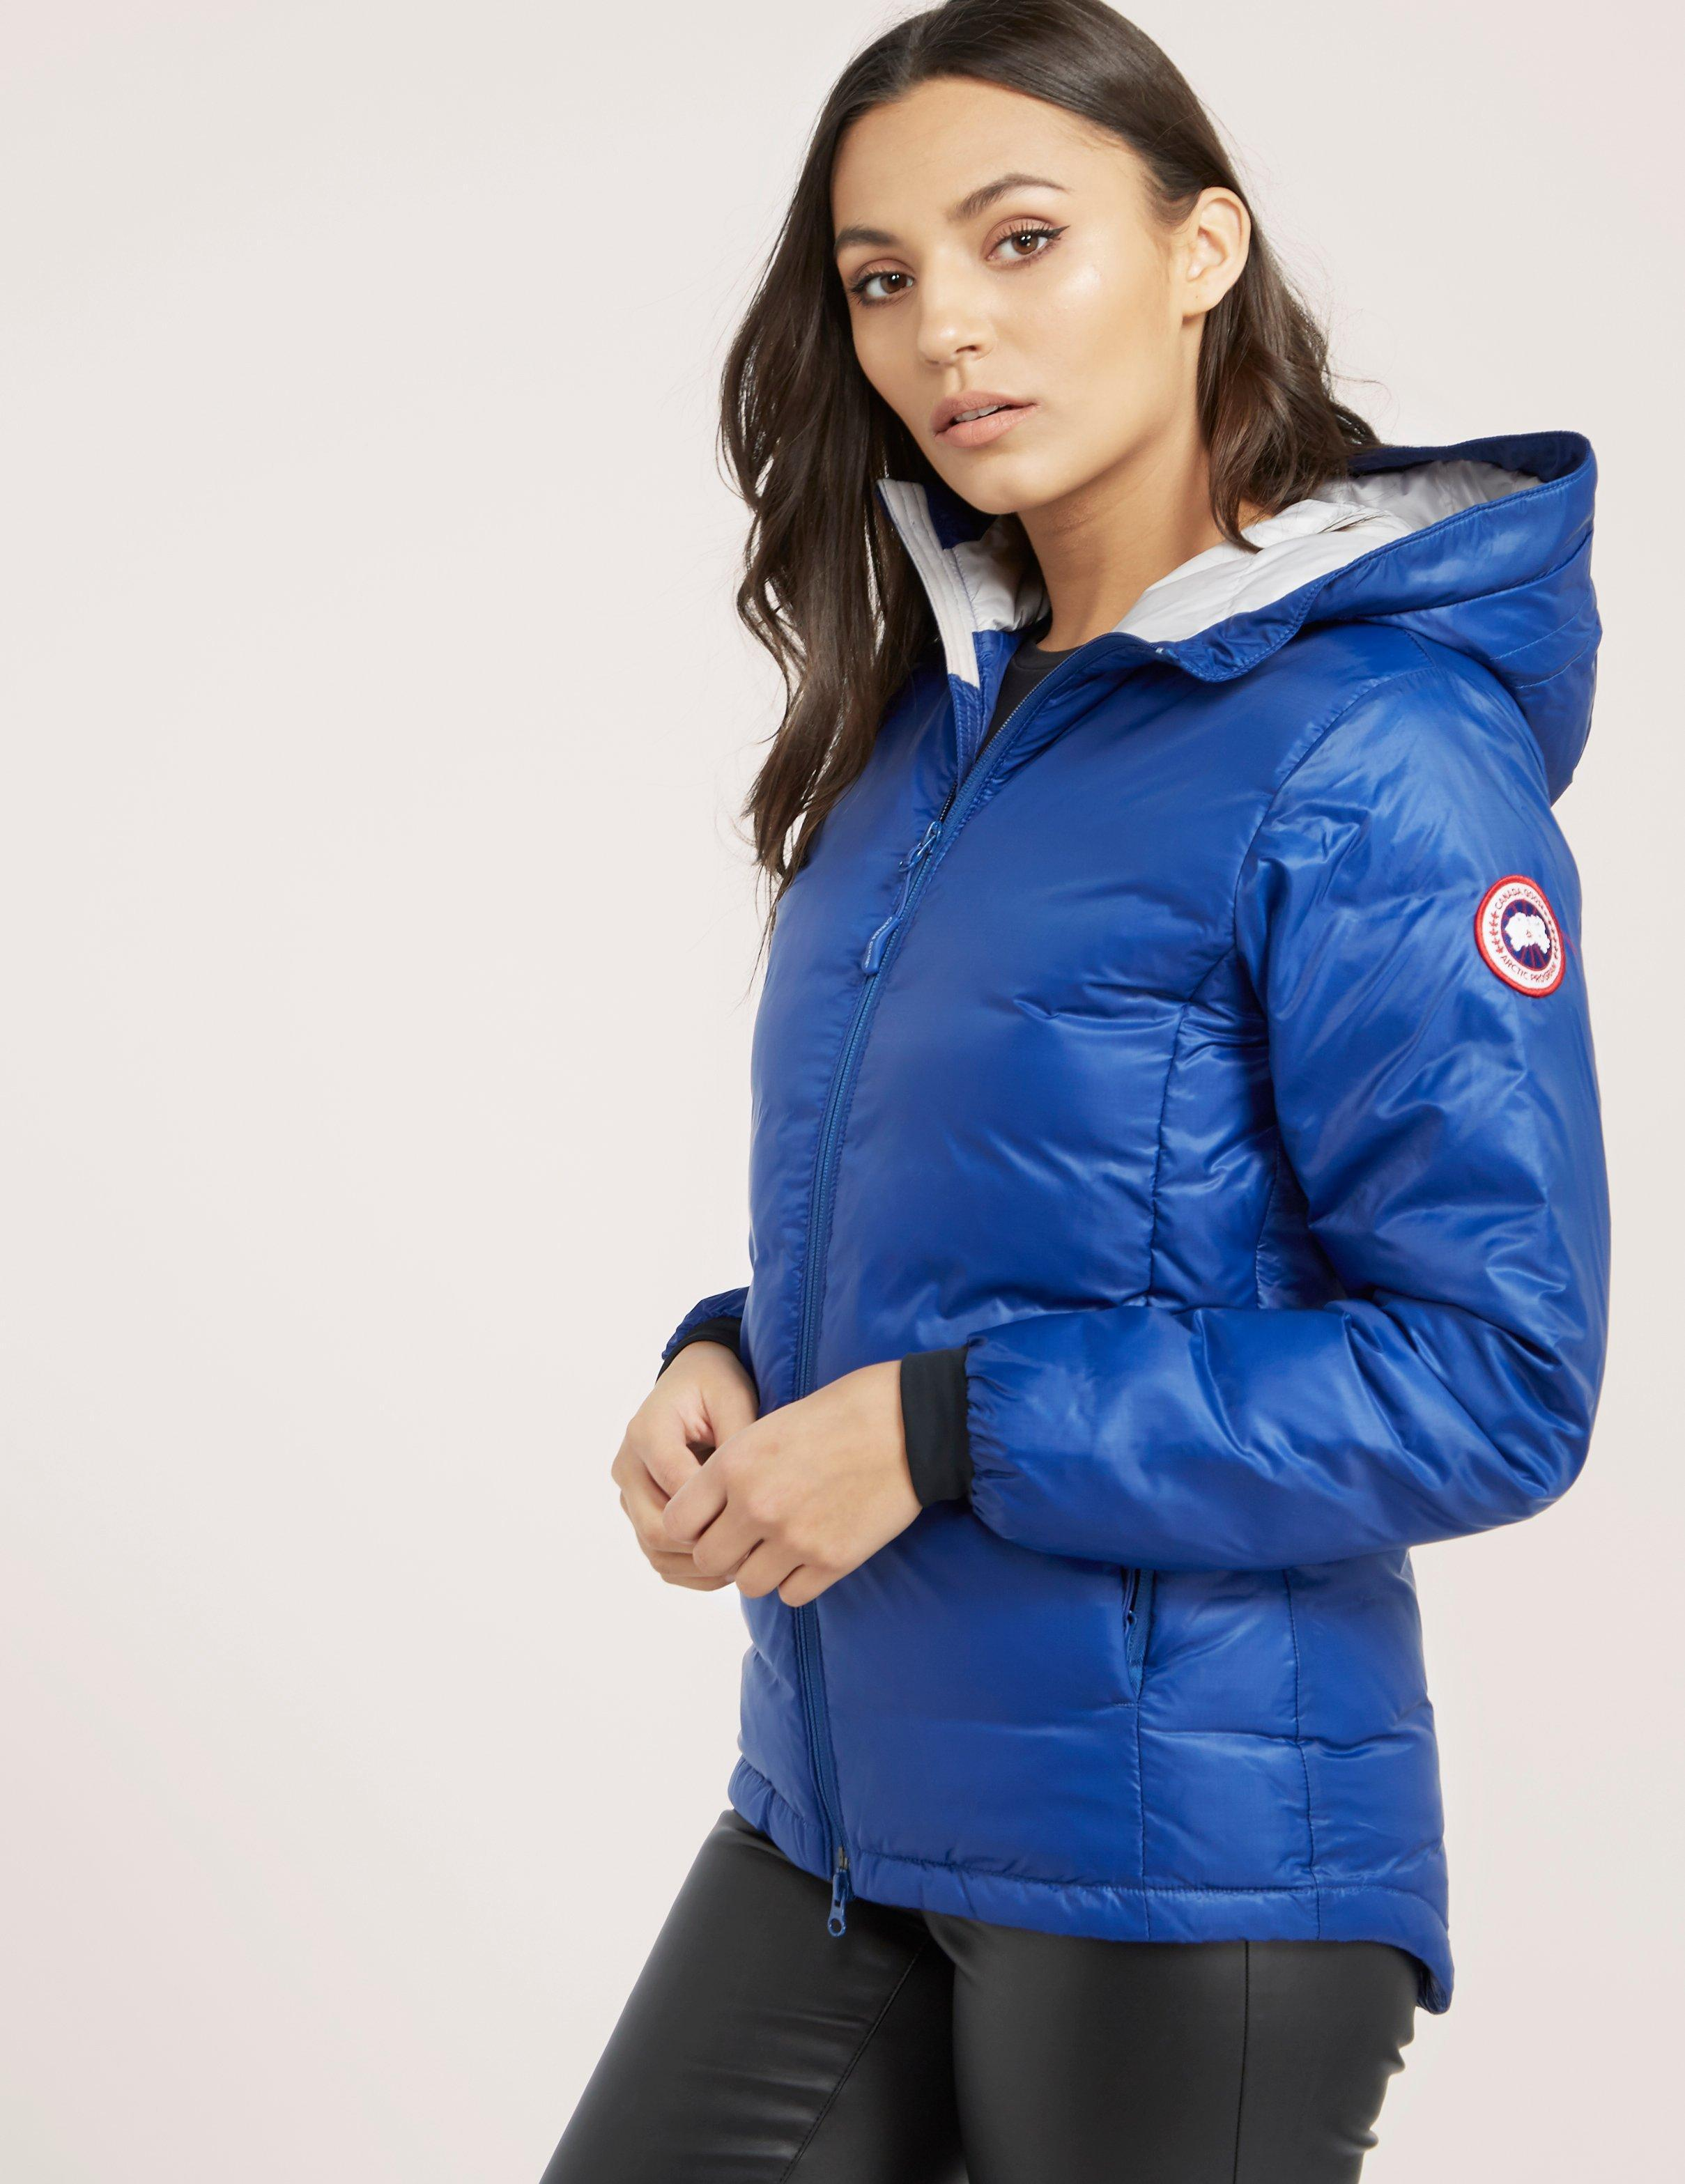 cfe1337bda74 Canada Goose Womens Camp Hooded Padded Jacket Blue in Blue - Lyst